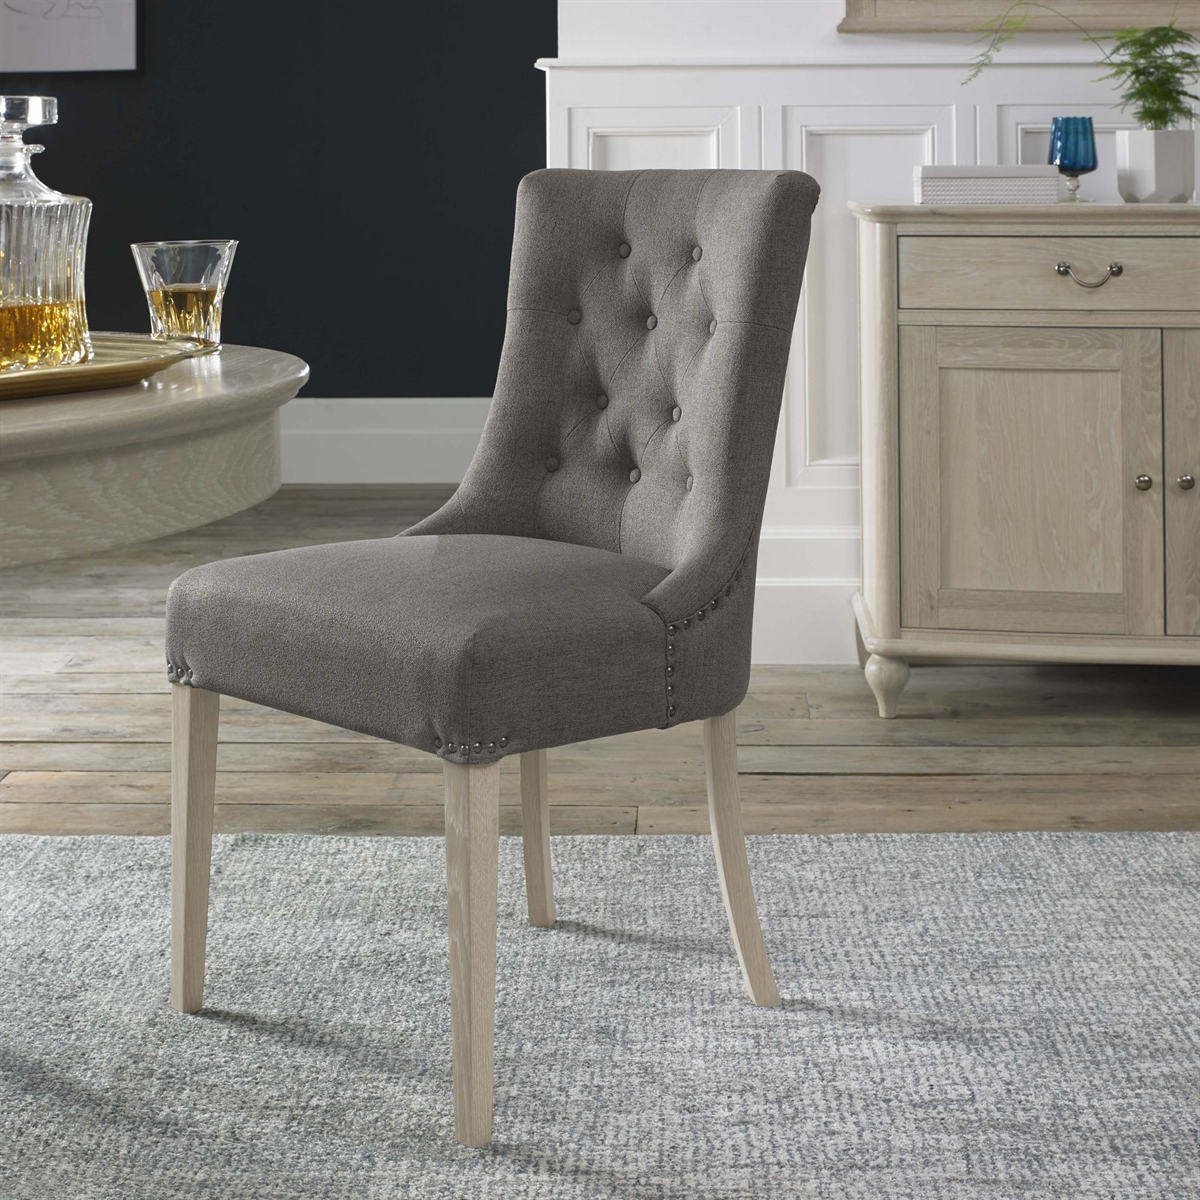 Bordeaux Chair - Upholstered Scoop Chair - Titanium Fabric